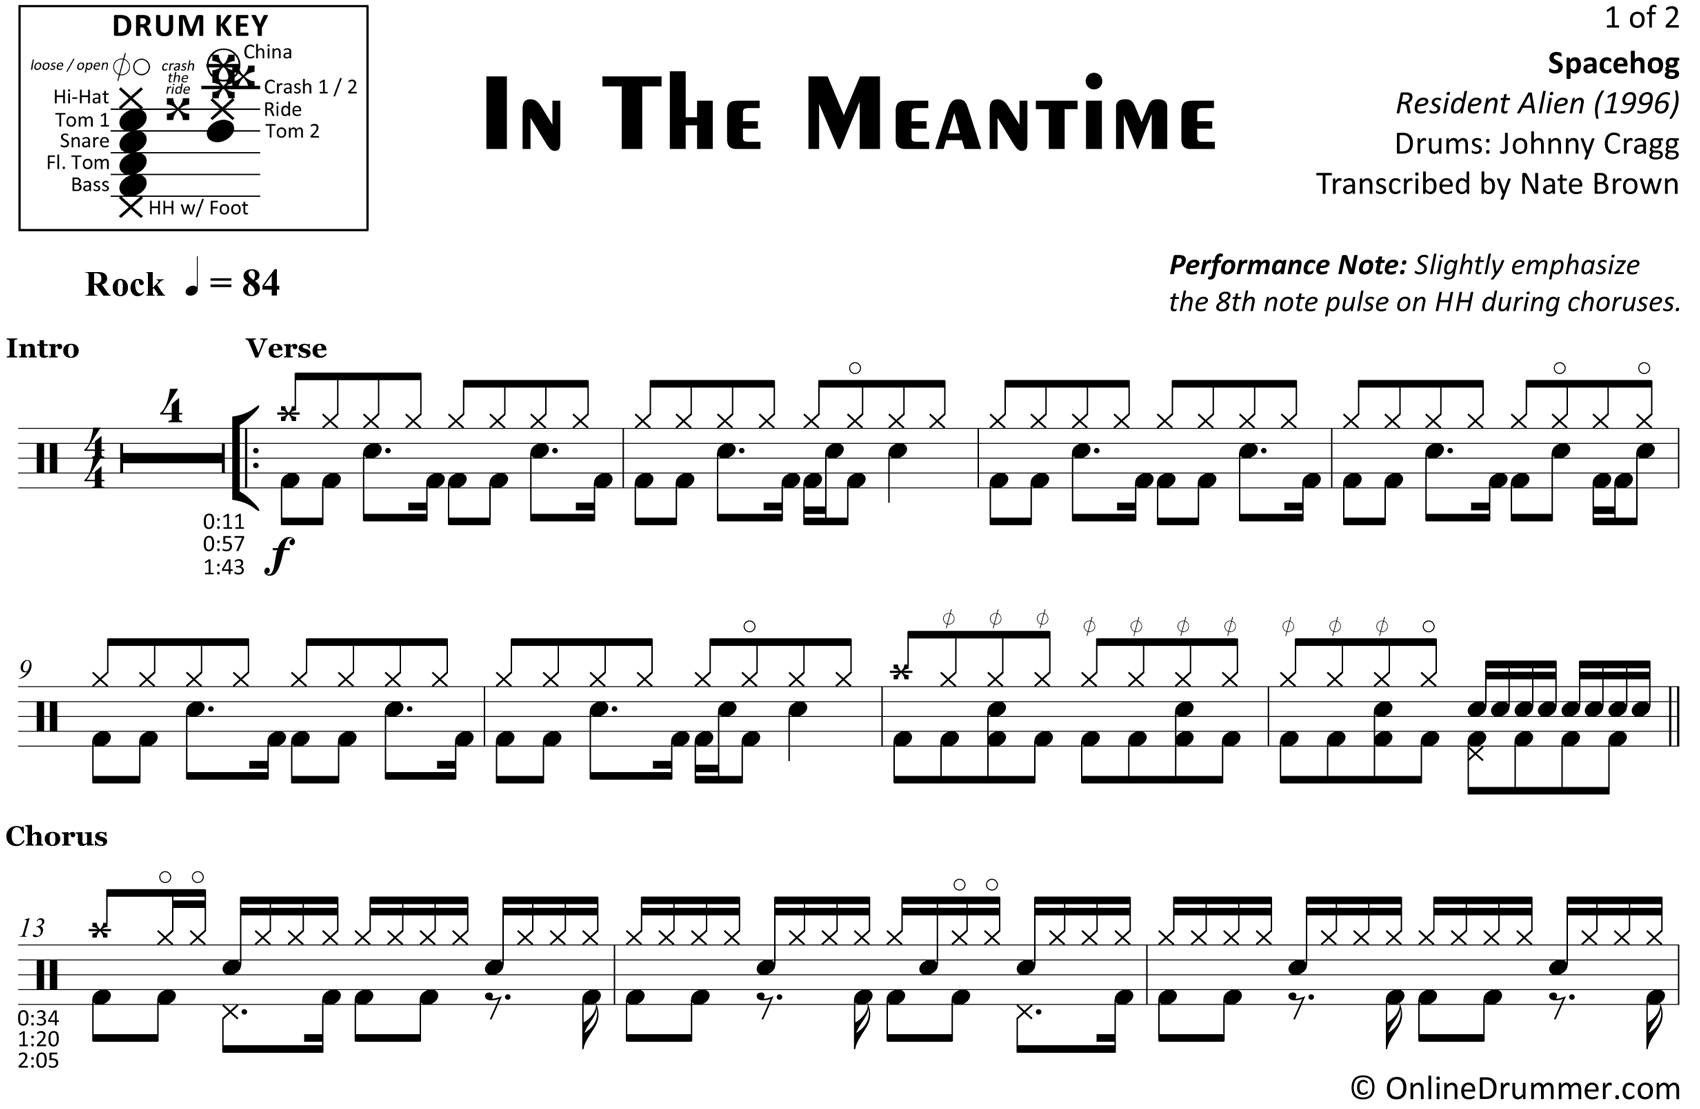 In The Meantime - Spacehog - Drum Sheet Music